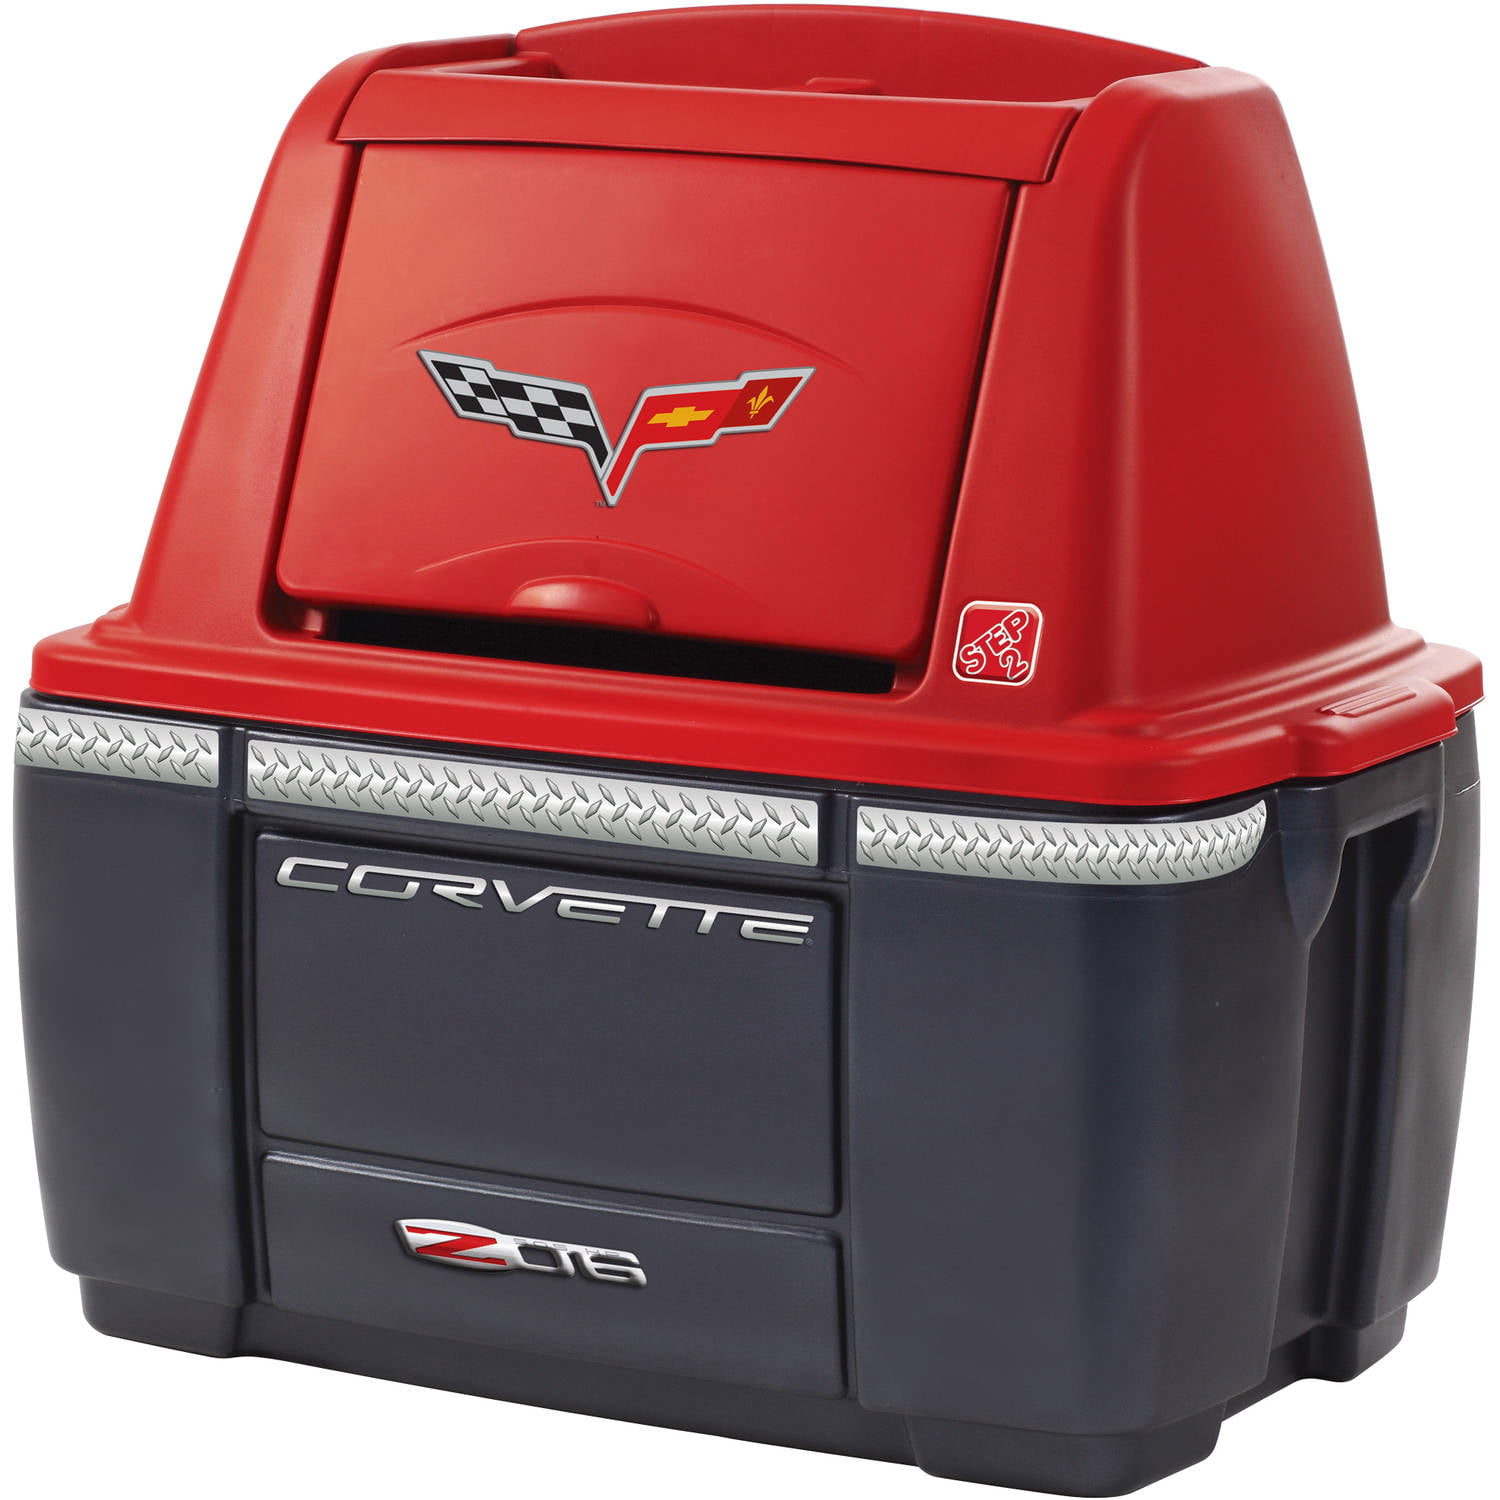 Corvette Bedroom Set Part - 44: Corvette Storage Chest - Walmart.com